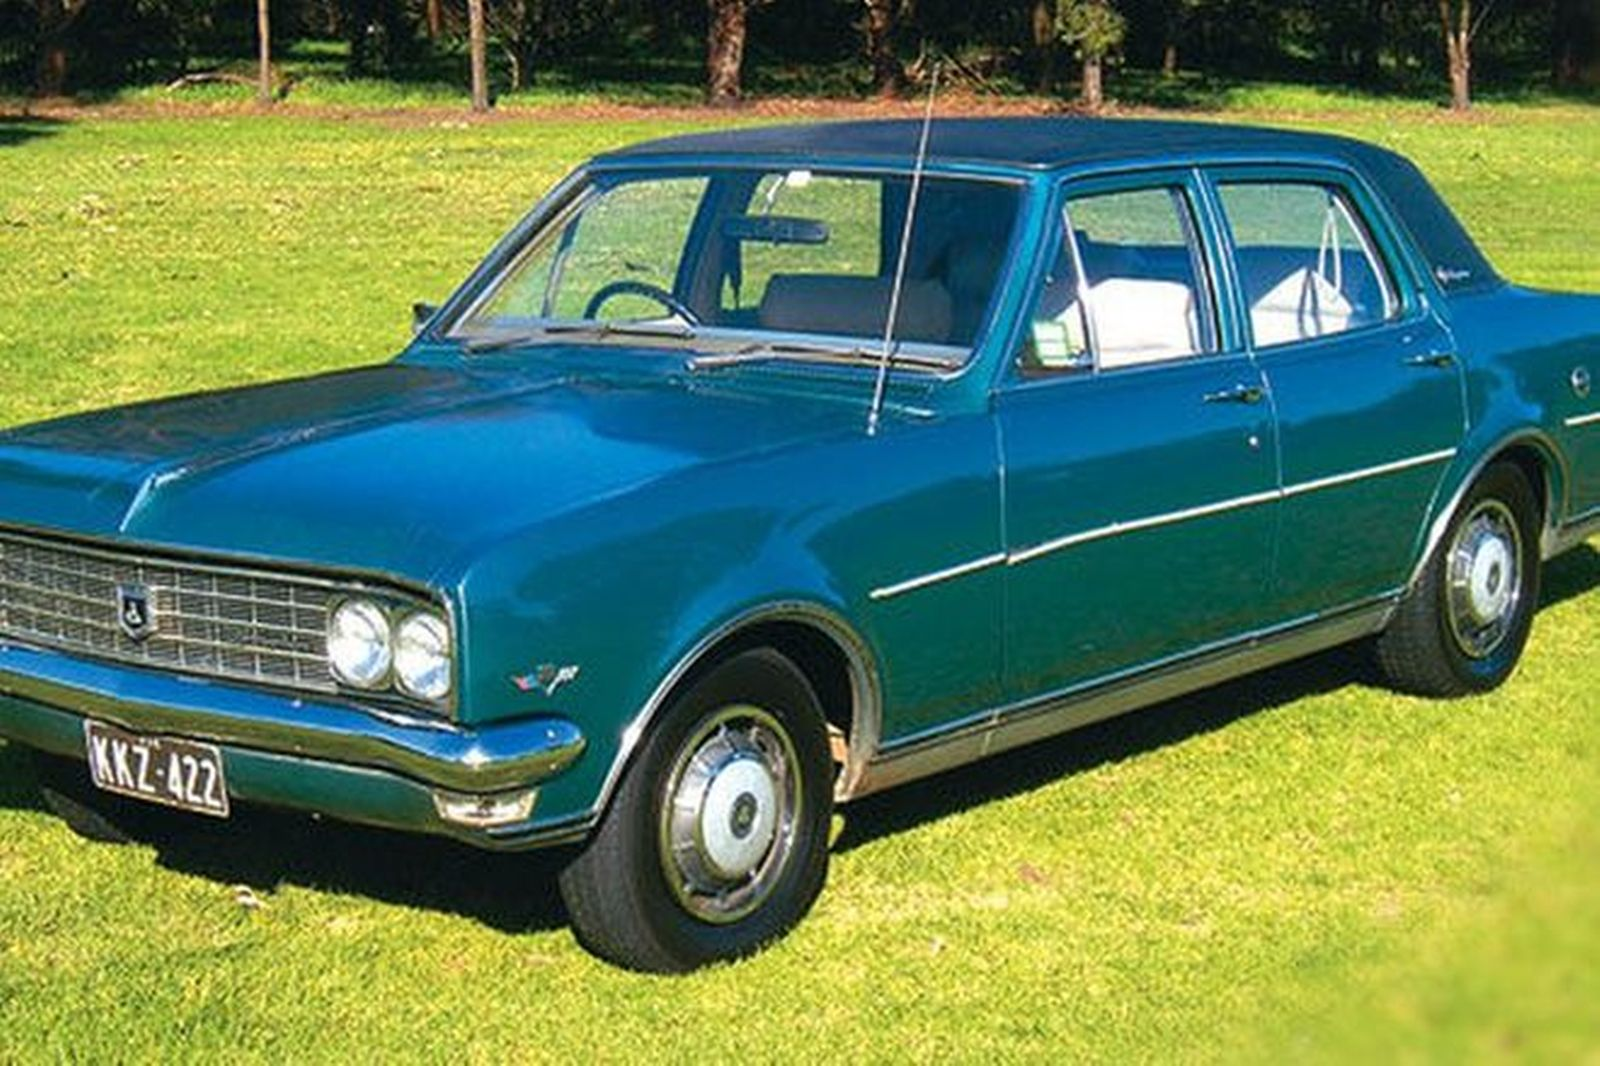 Holden HT 308 Brougham Sedan